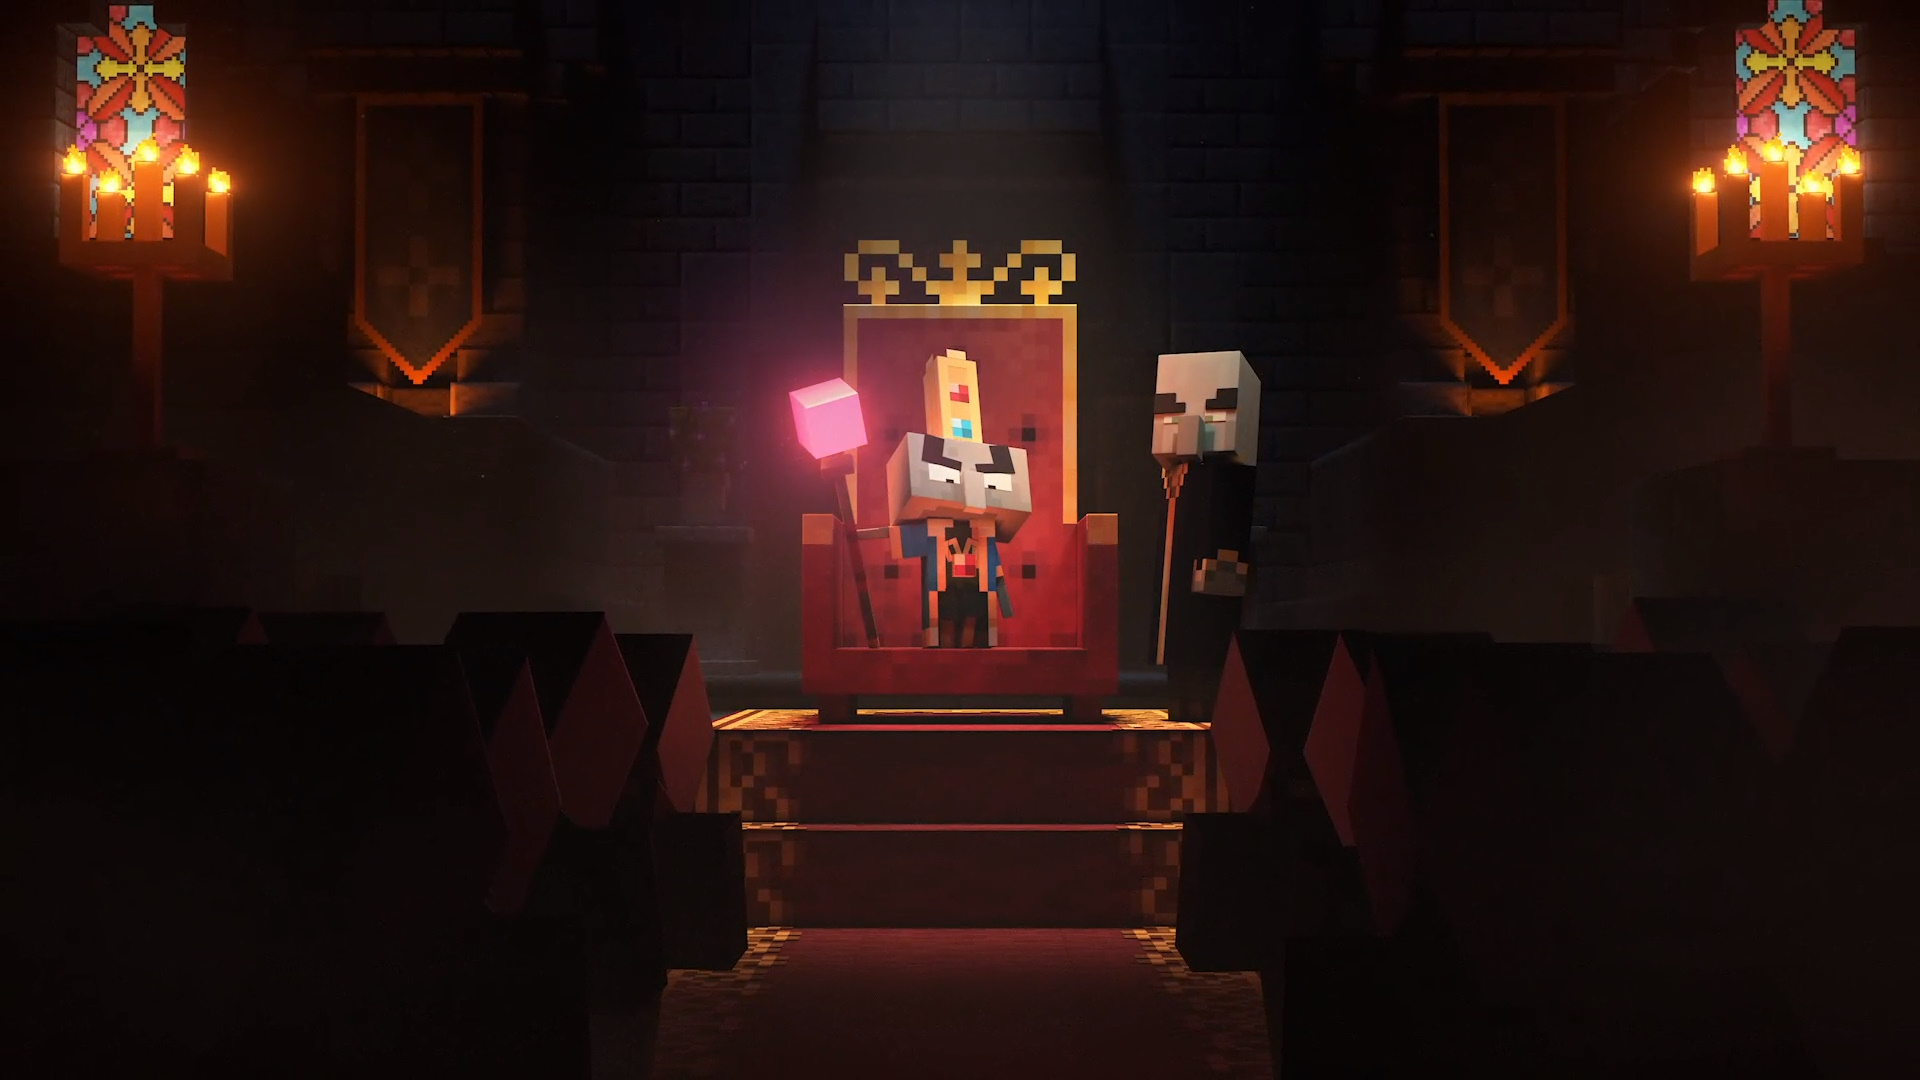 Minecraft Dungeons has spells, tons of loot, and battle llamas